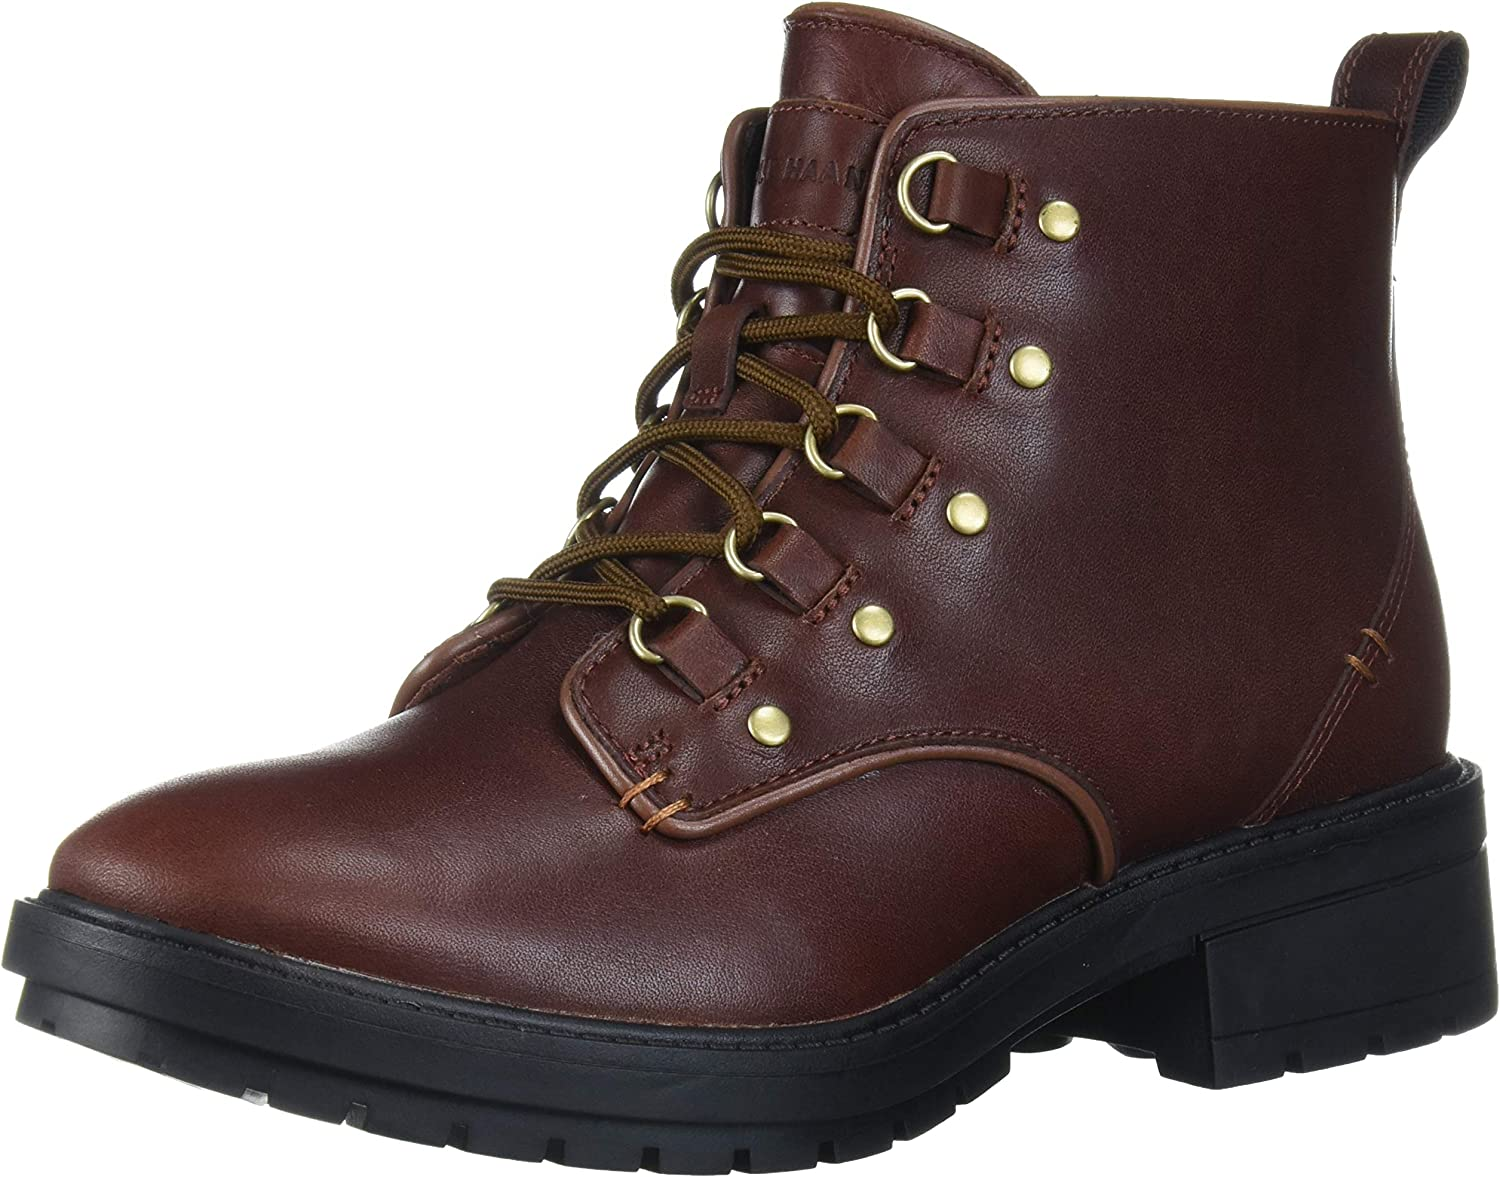 Briana Grand Lace-up Hiker Boot Hiking